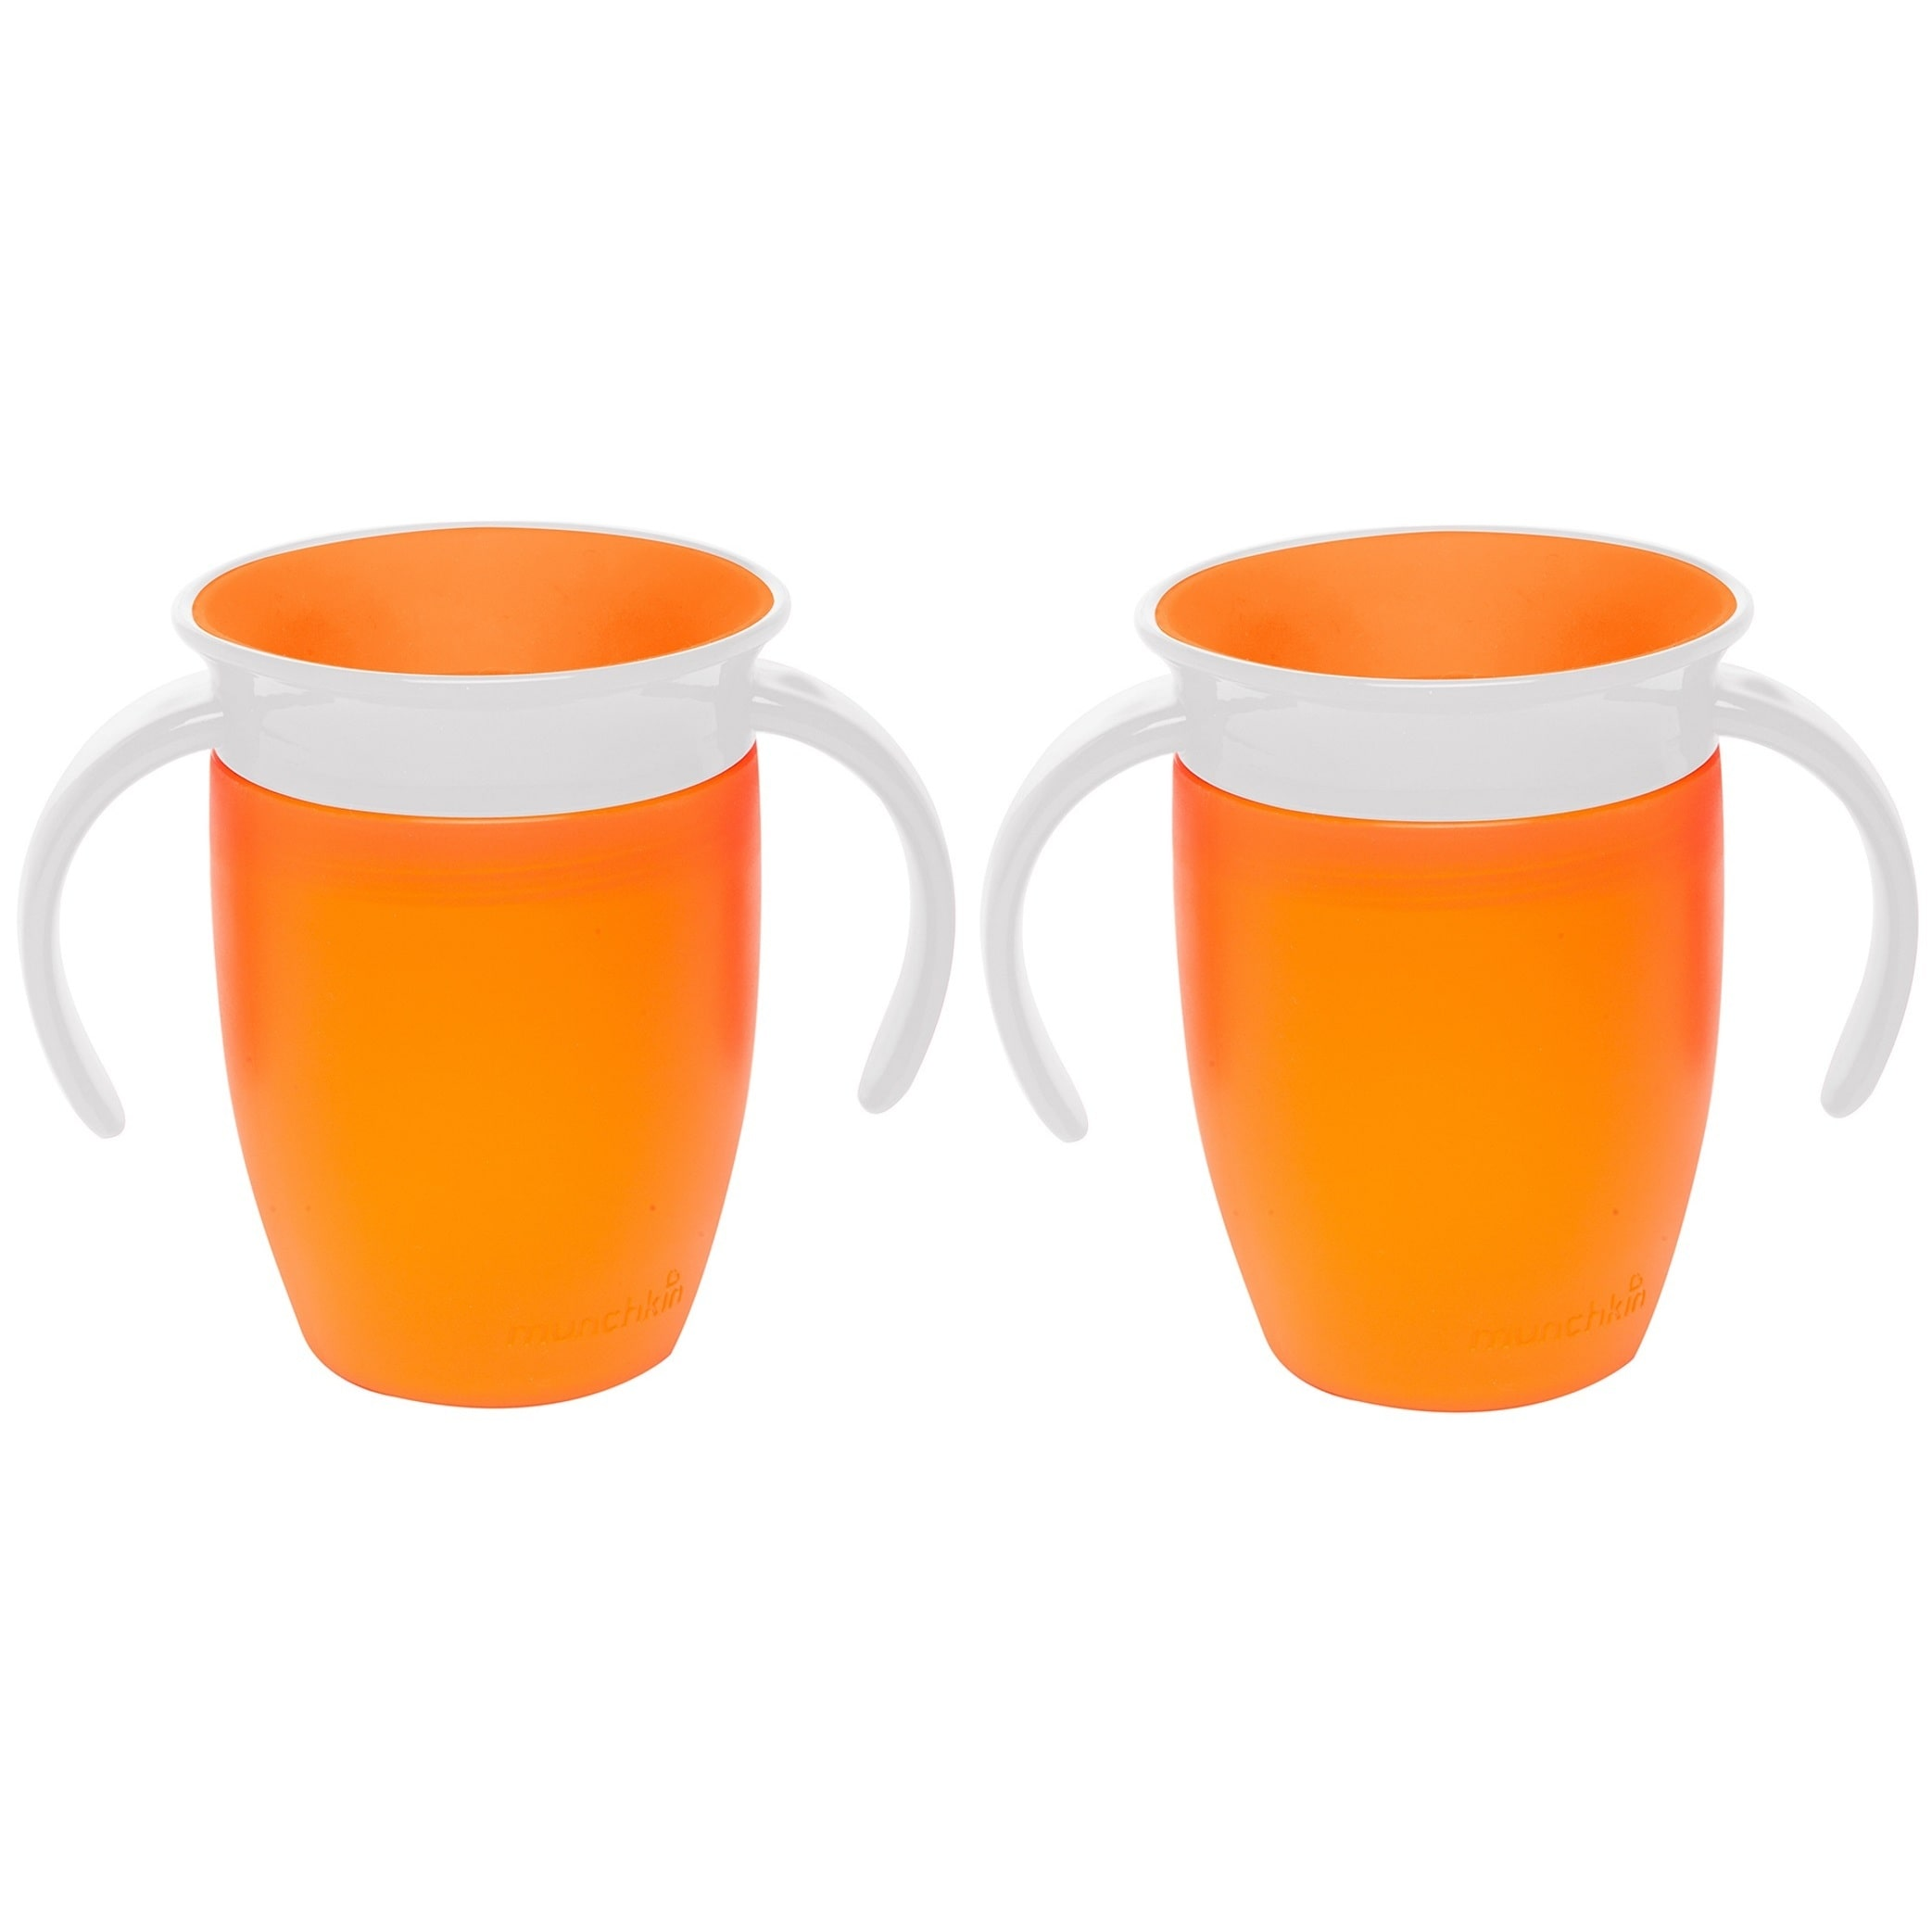 Munchkin Miracle 360 Trainer Cup 7 Ounce Orange 2 Count by Munchkin